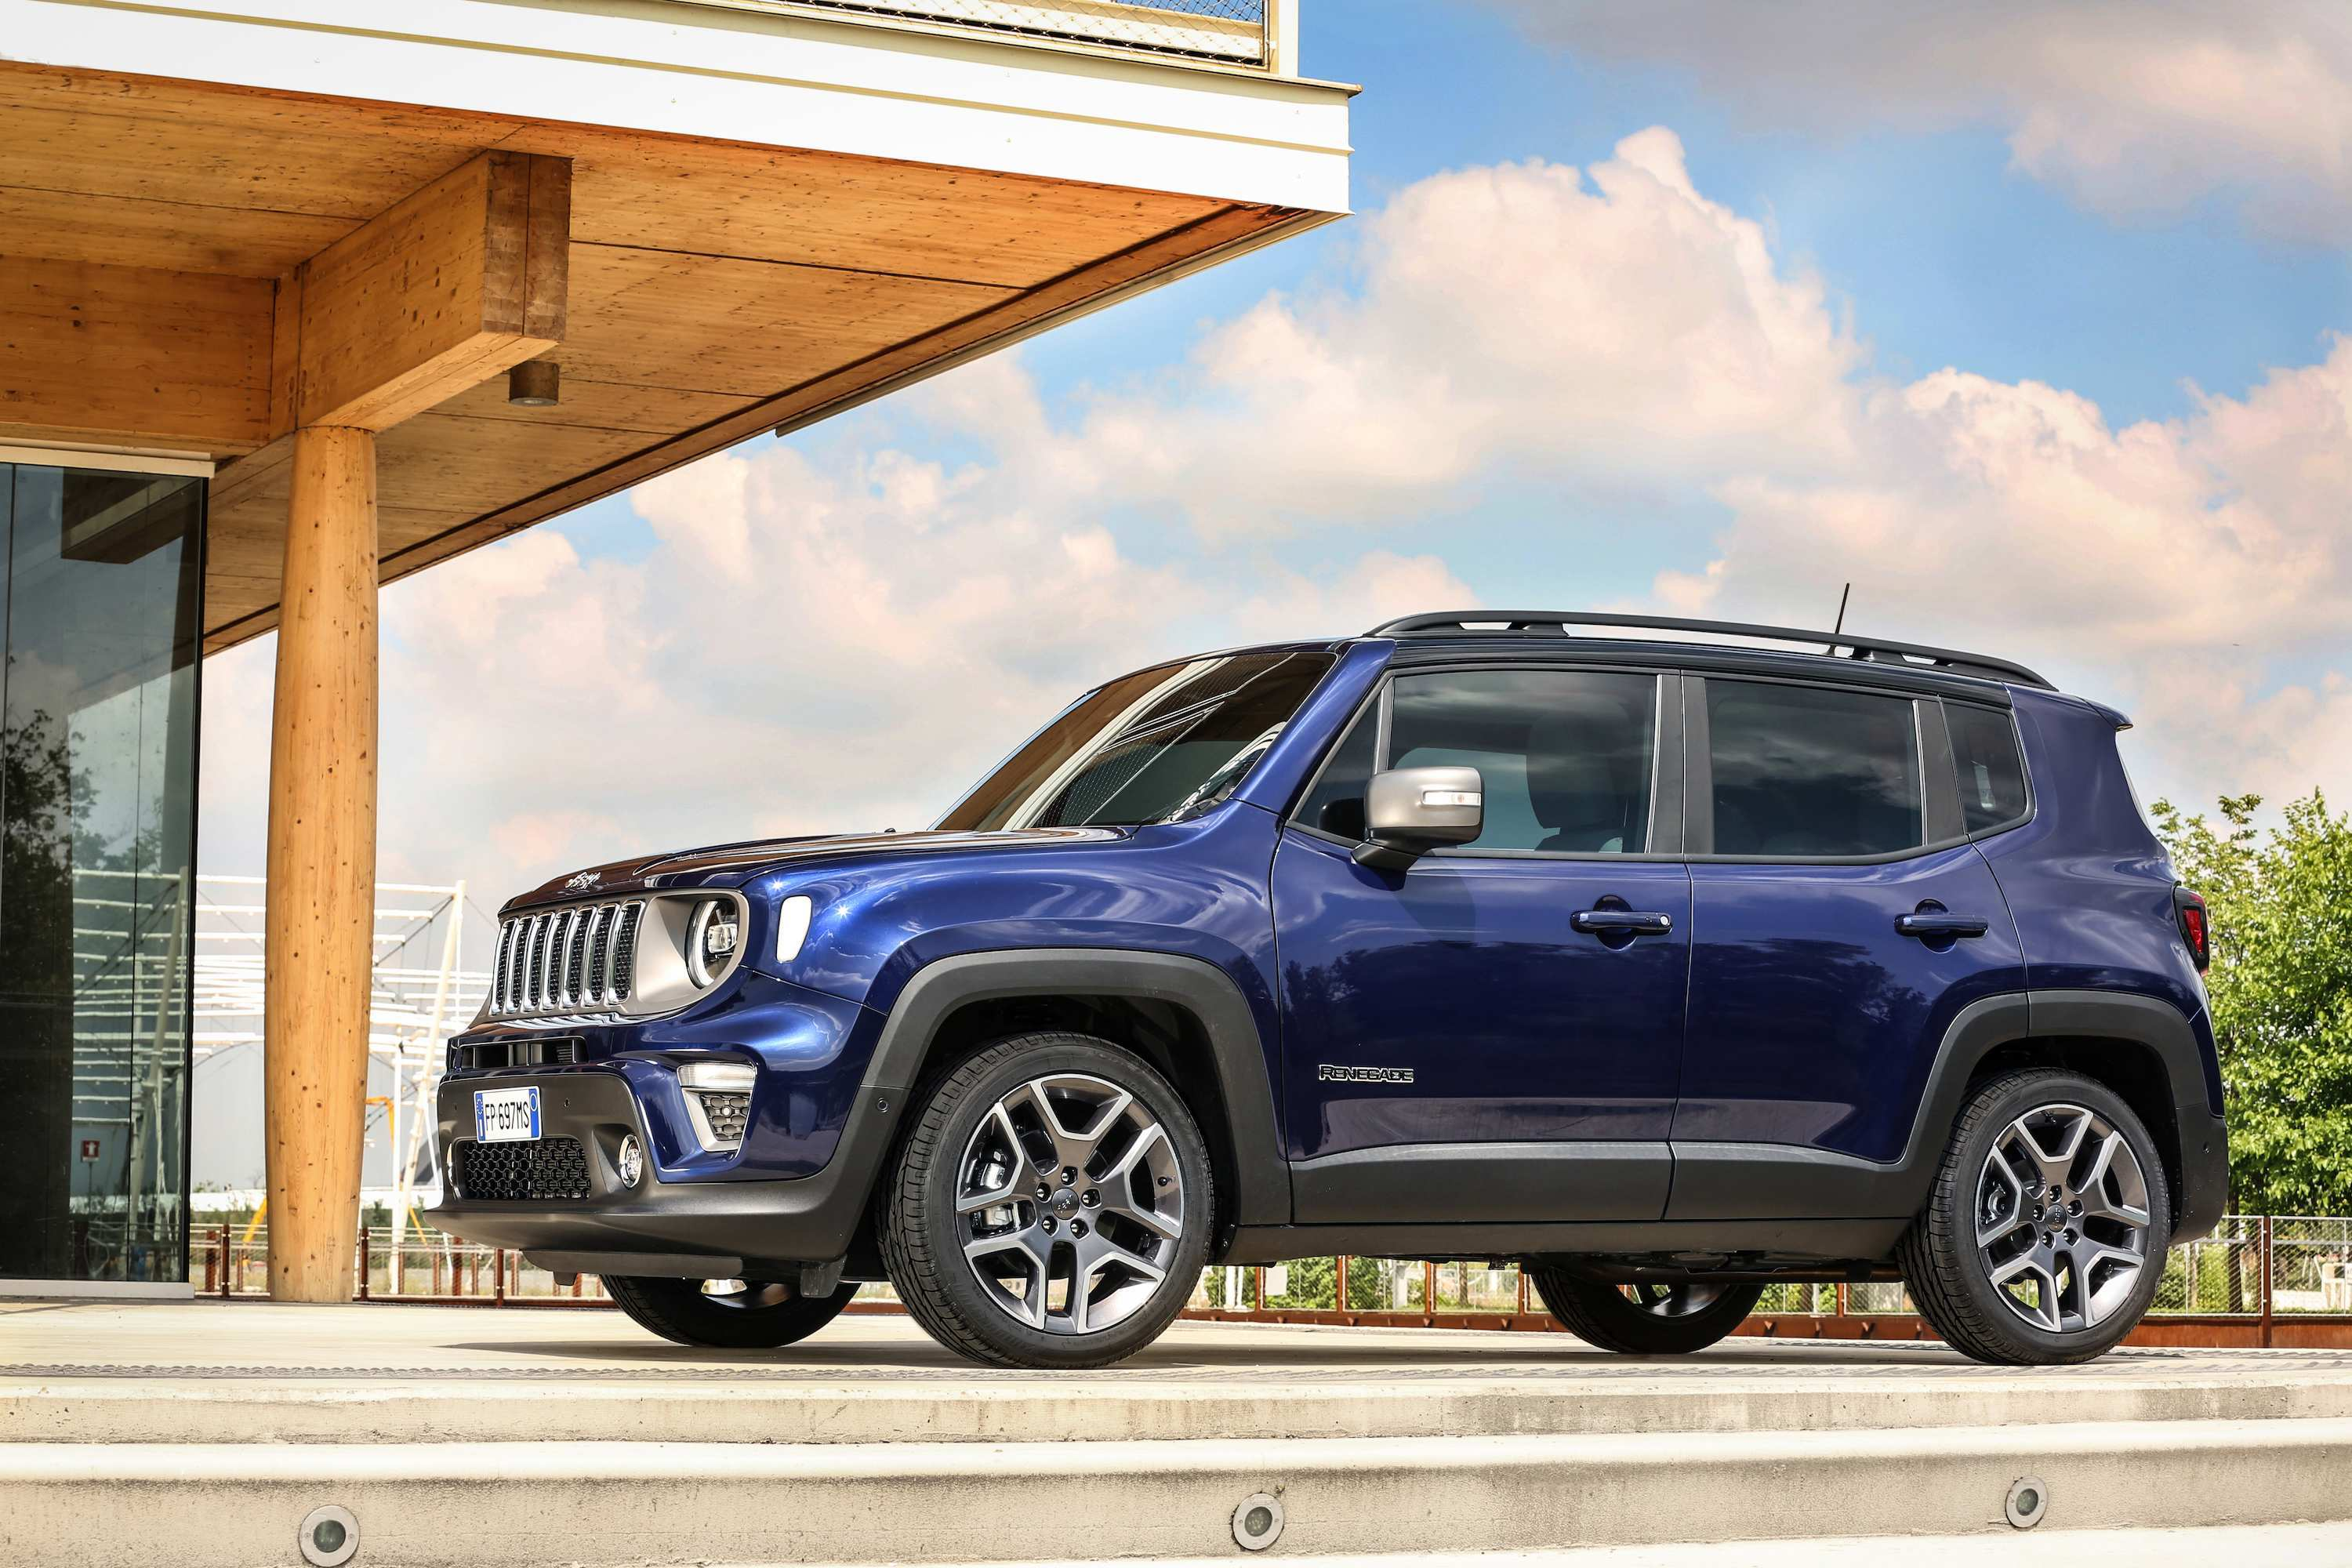 33 New Jeep Renegade 2020 Specs And Review